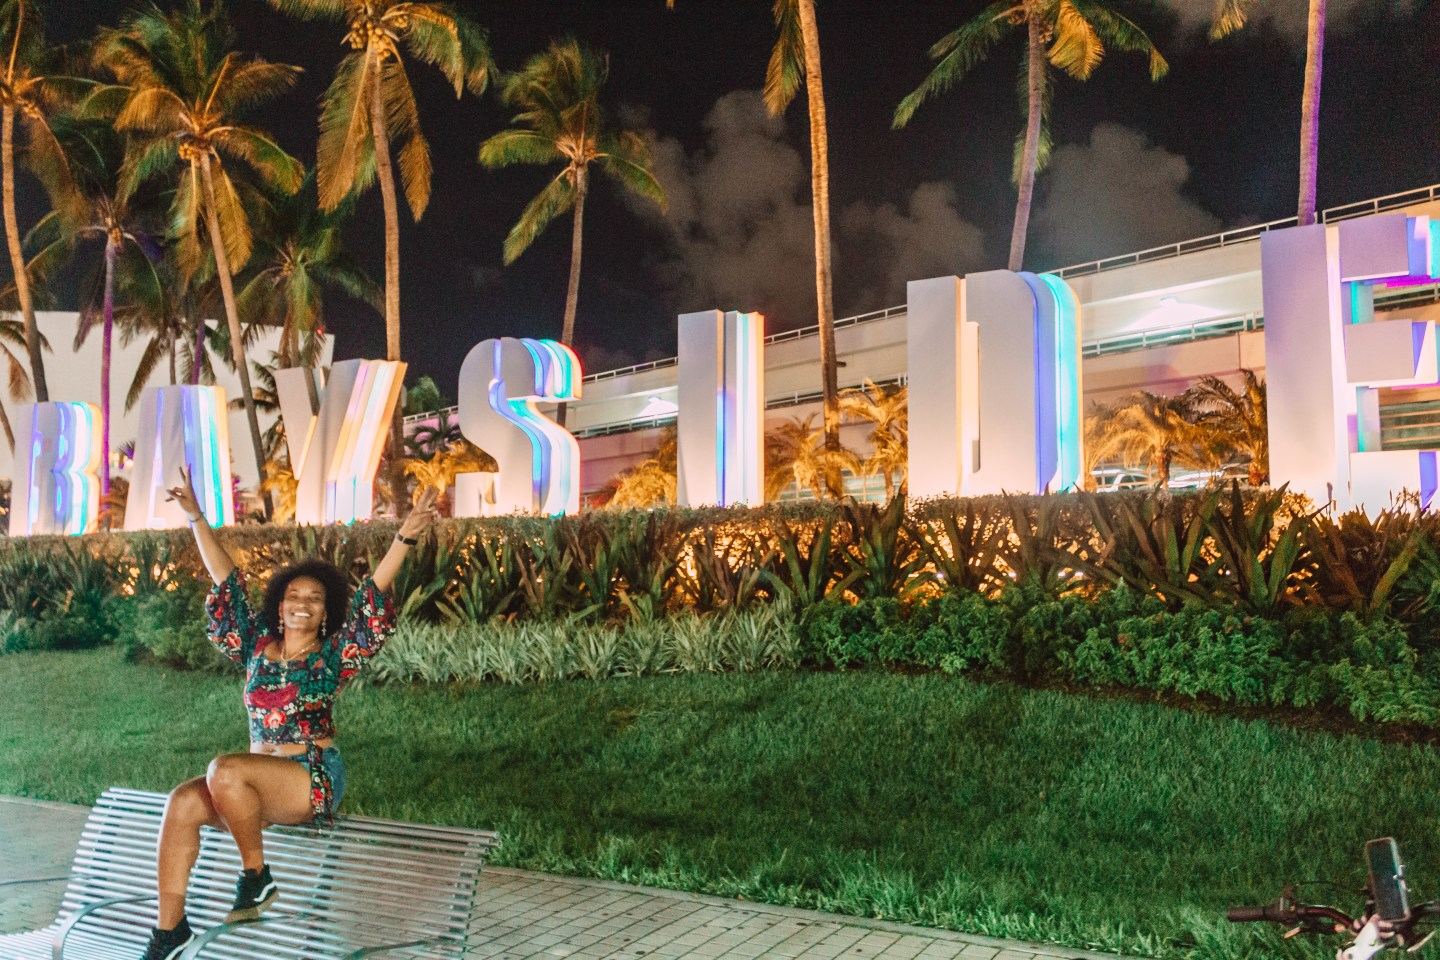 Illustrated by Sade - Woman taking photo at night in front of Bayside large sign in Miami, Florida